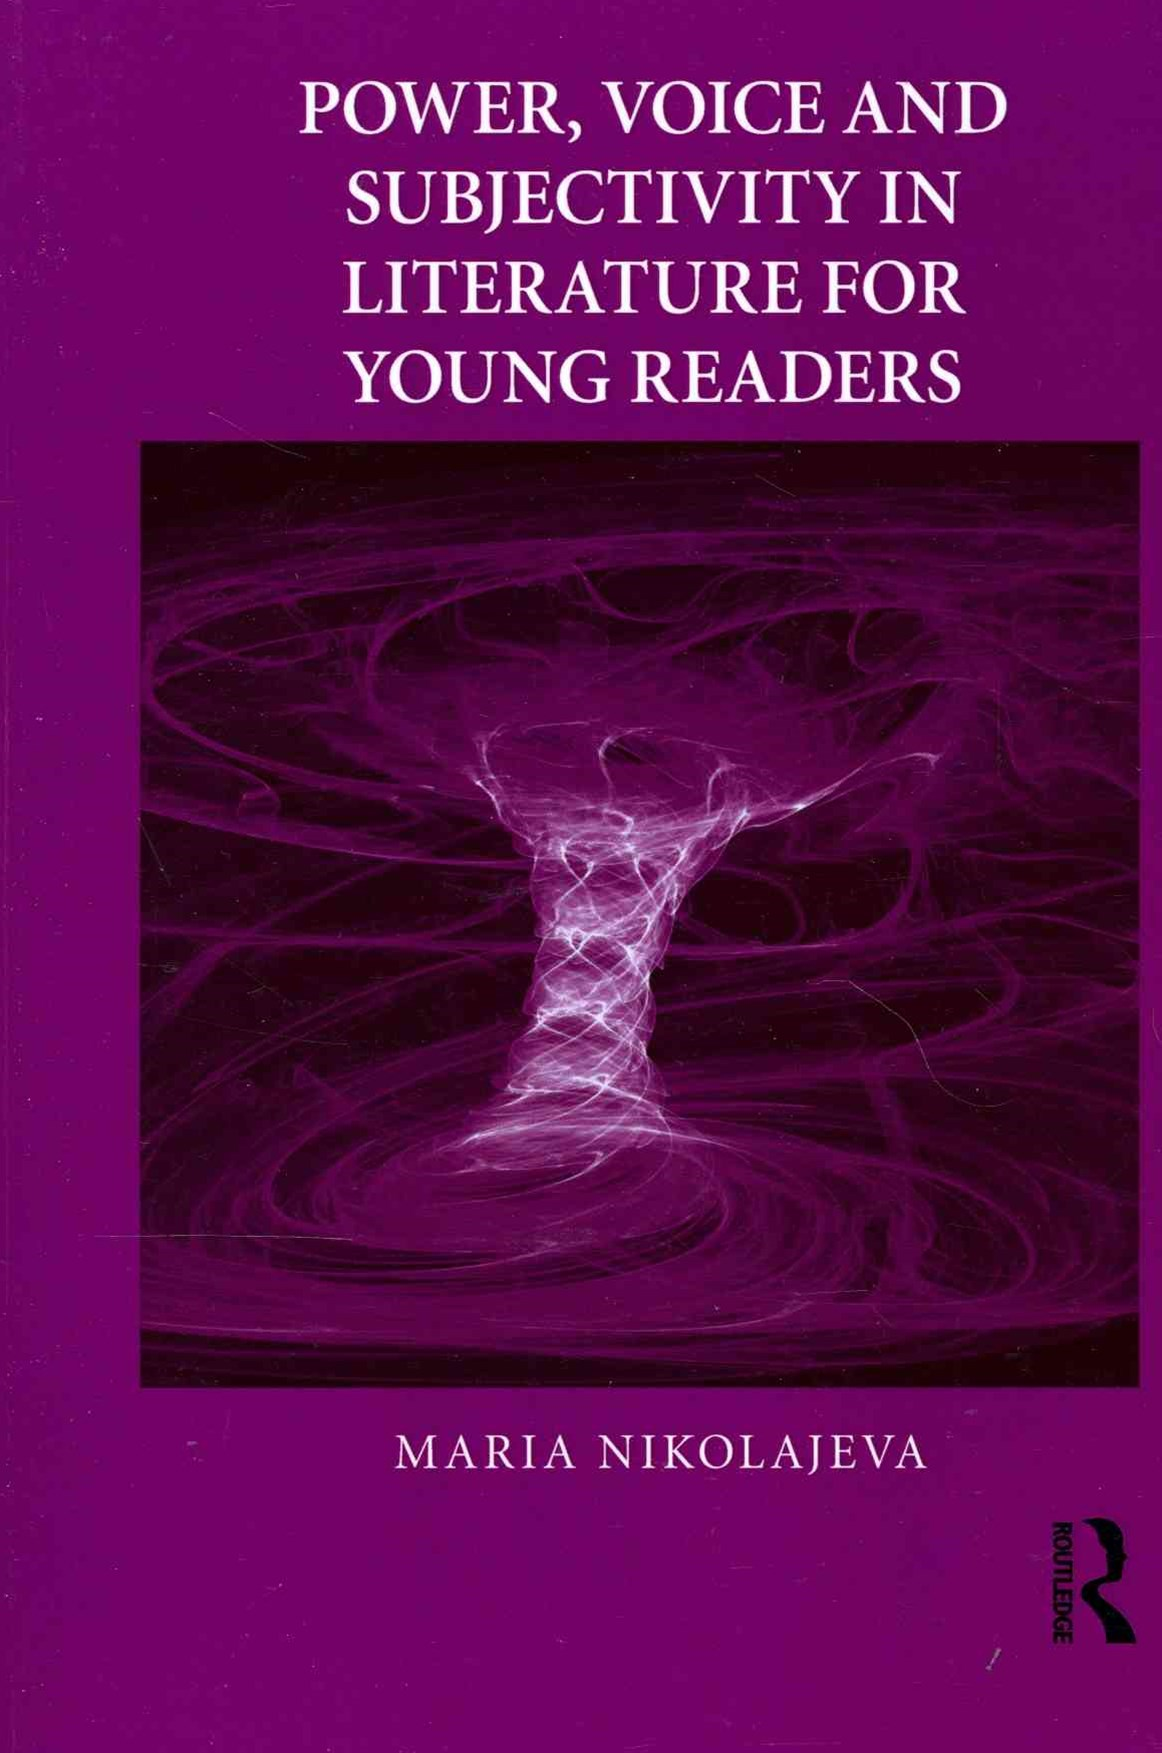 Power, Voice and Subjectivity in Literature for Young Readers